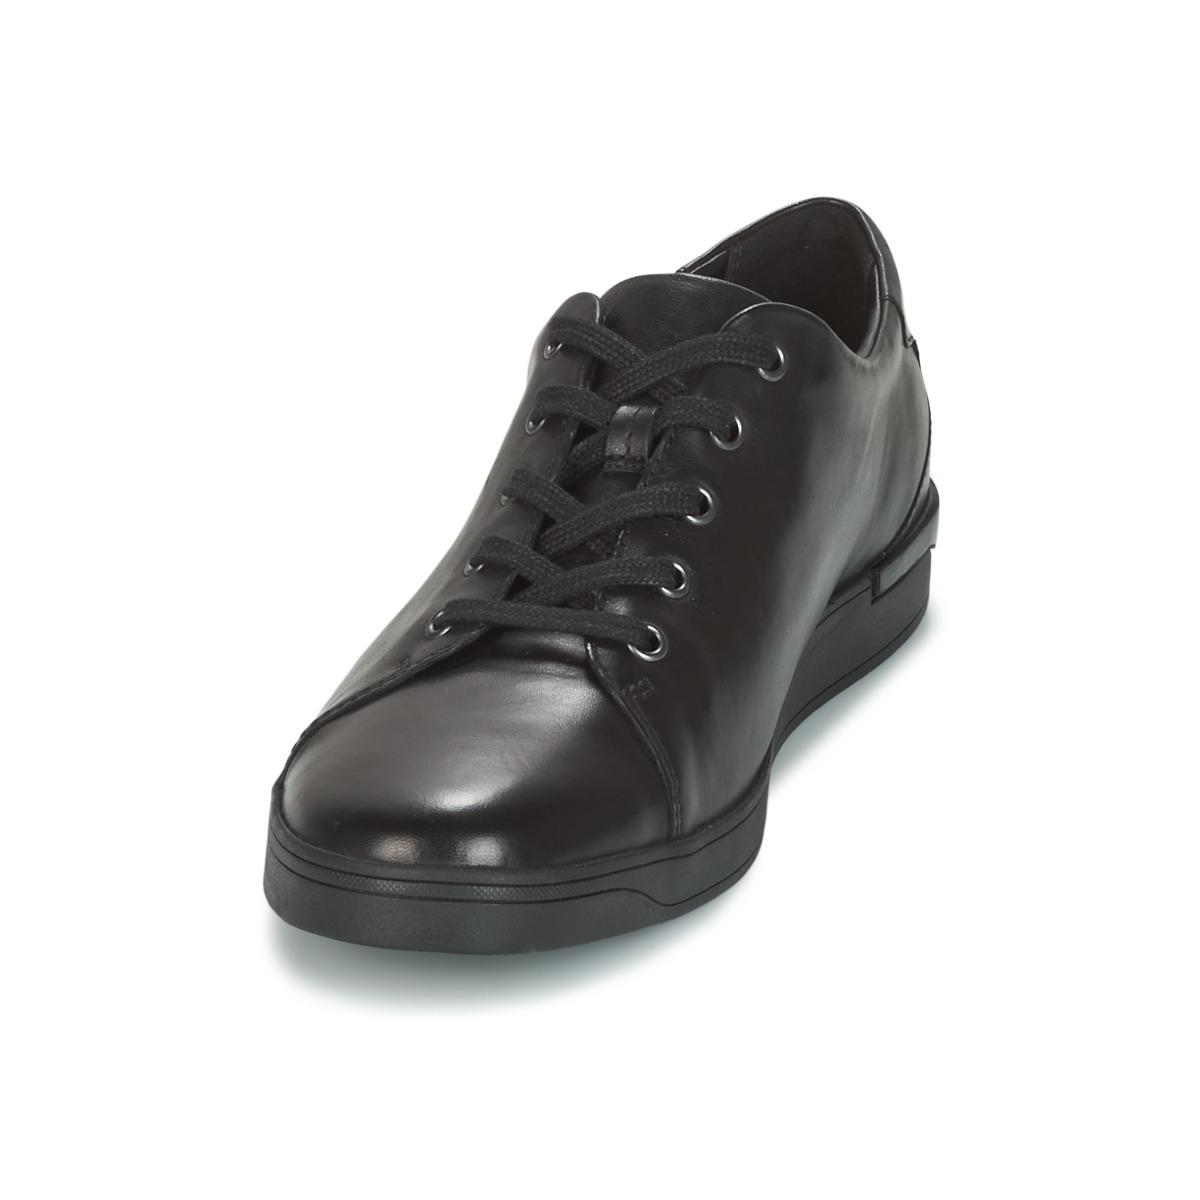 Clarks Black Leather Men's Shoes (trainers) In Black for Men